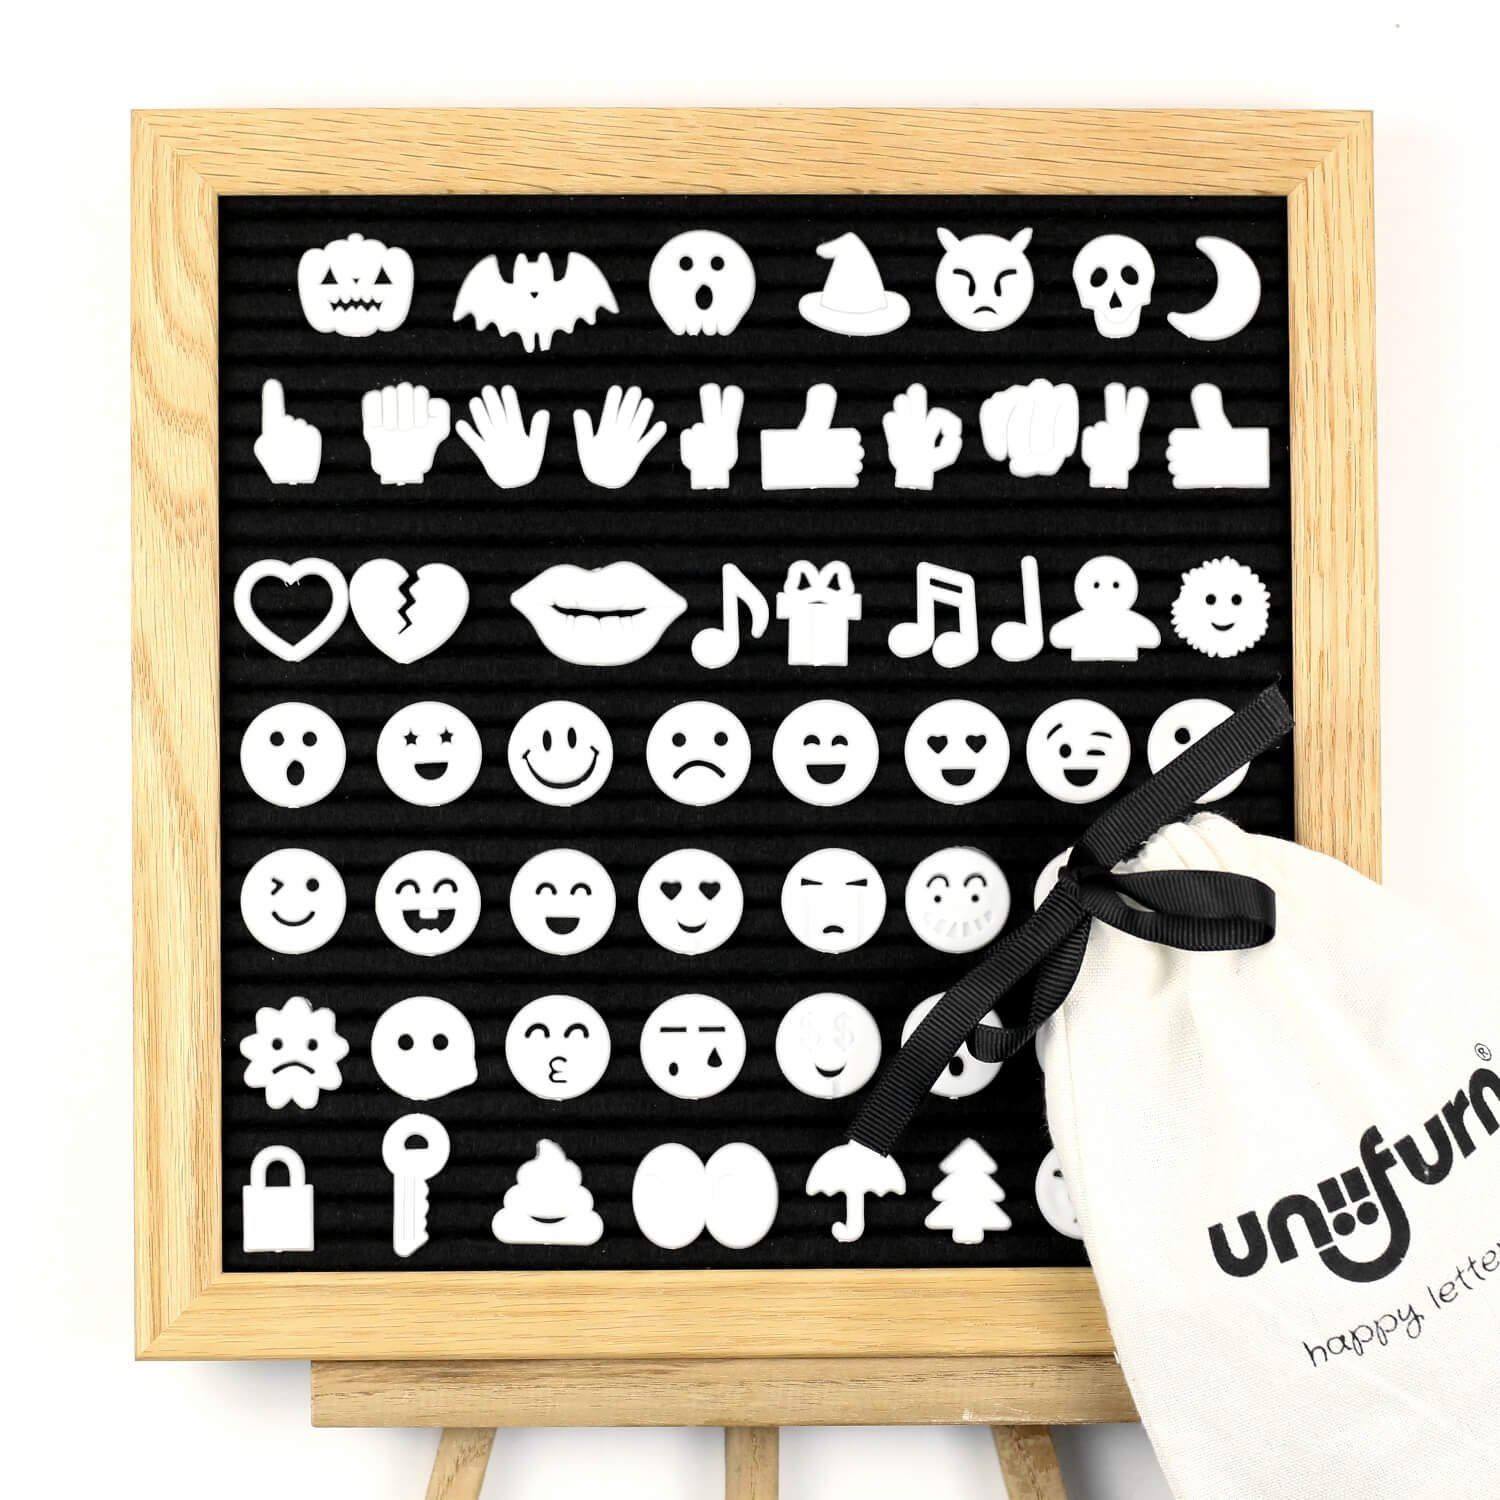 Uniifurn 10x10 Changeable Letter Board with Oak Wood Frame, Black Felt Message Sign, Announcement Word Bulletin Board + 370 Unique Plastic Characters & Emojis for Menu or Office Quote Signs DT